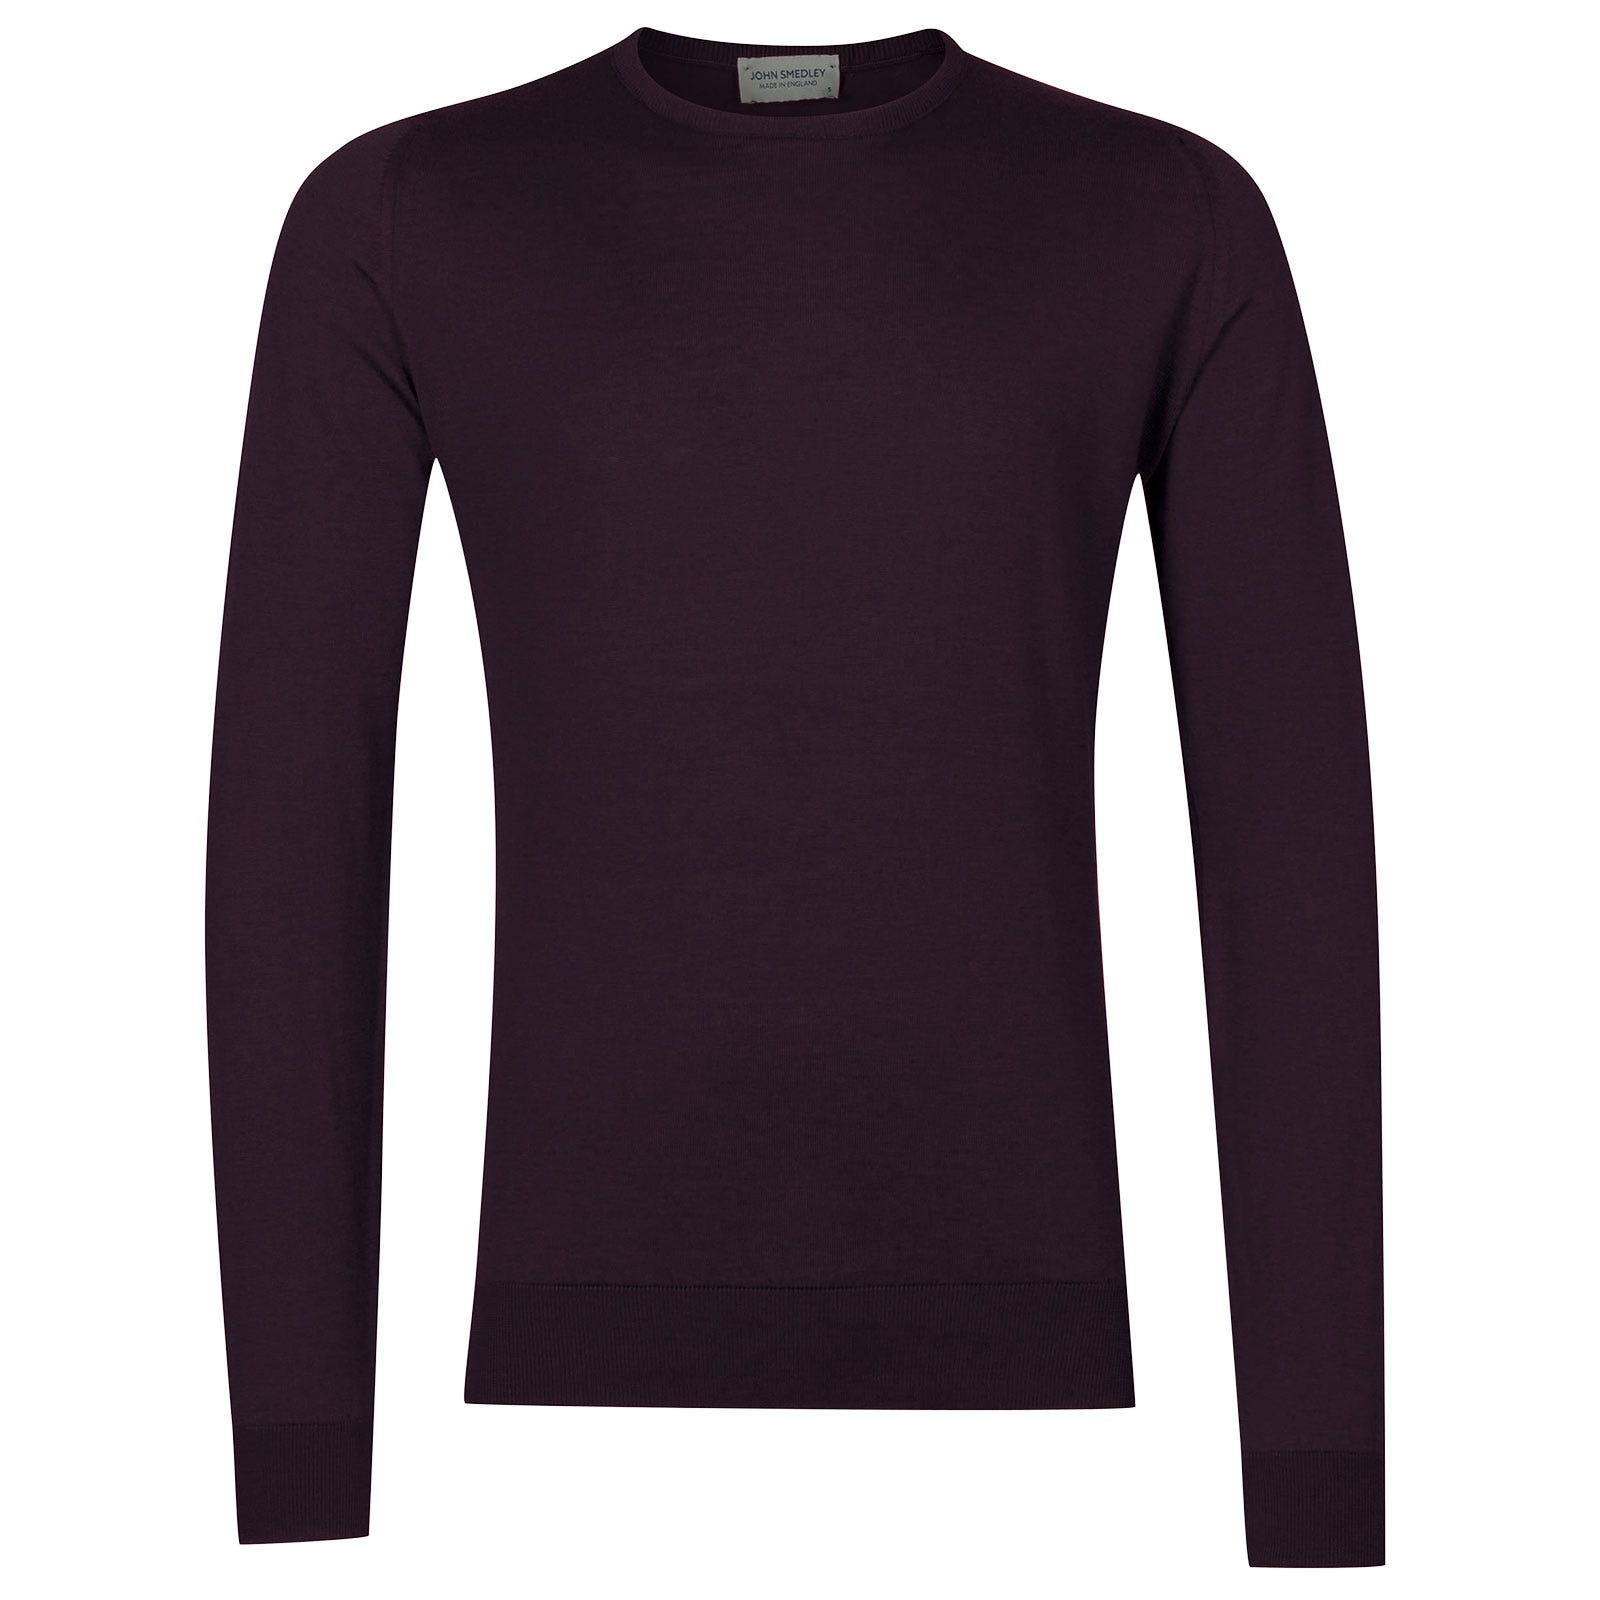 John Smedley Hatfield Sea Island Cotton Pullover in Mystic Purple-M